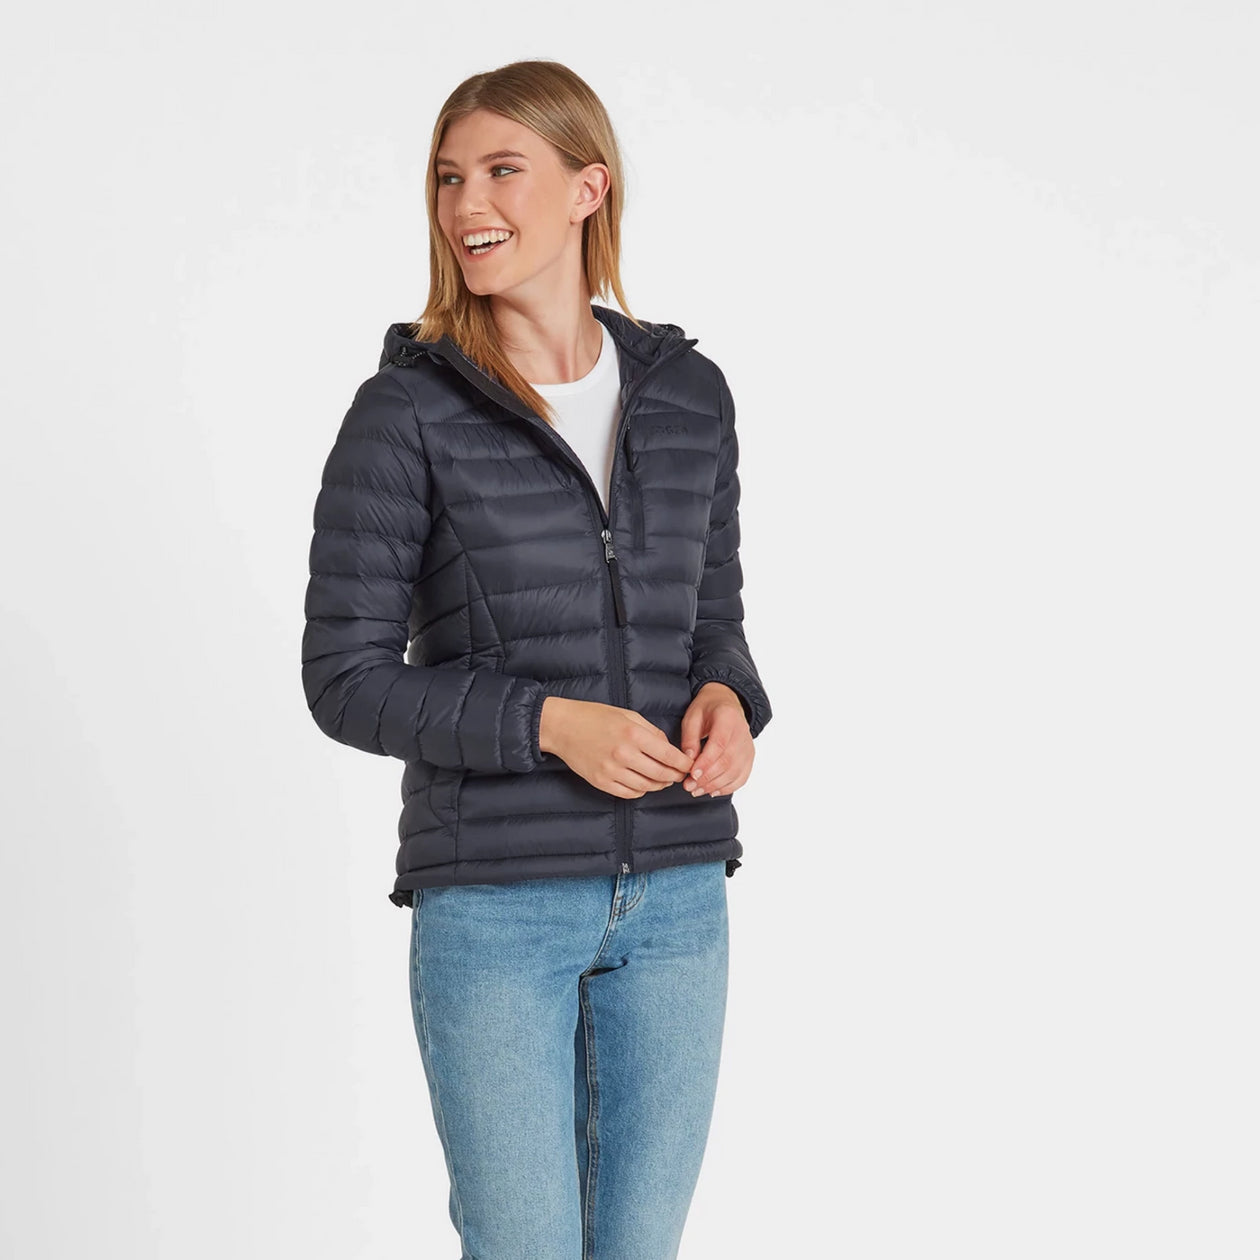 Drax Womens Hooded Down Jacket - Navy image 4